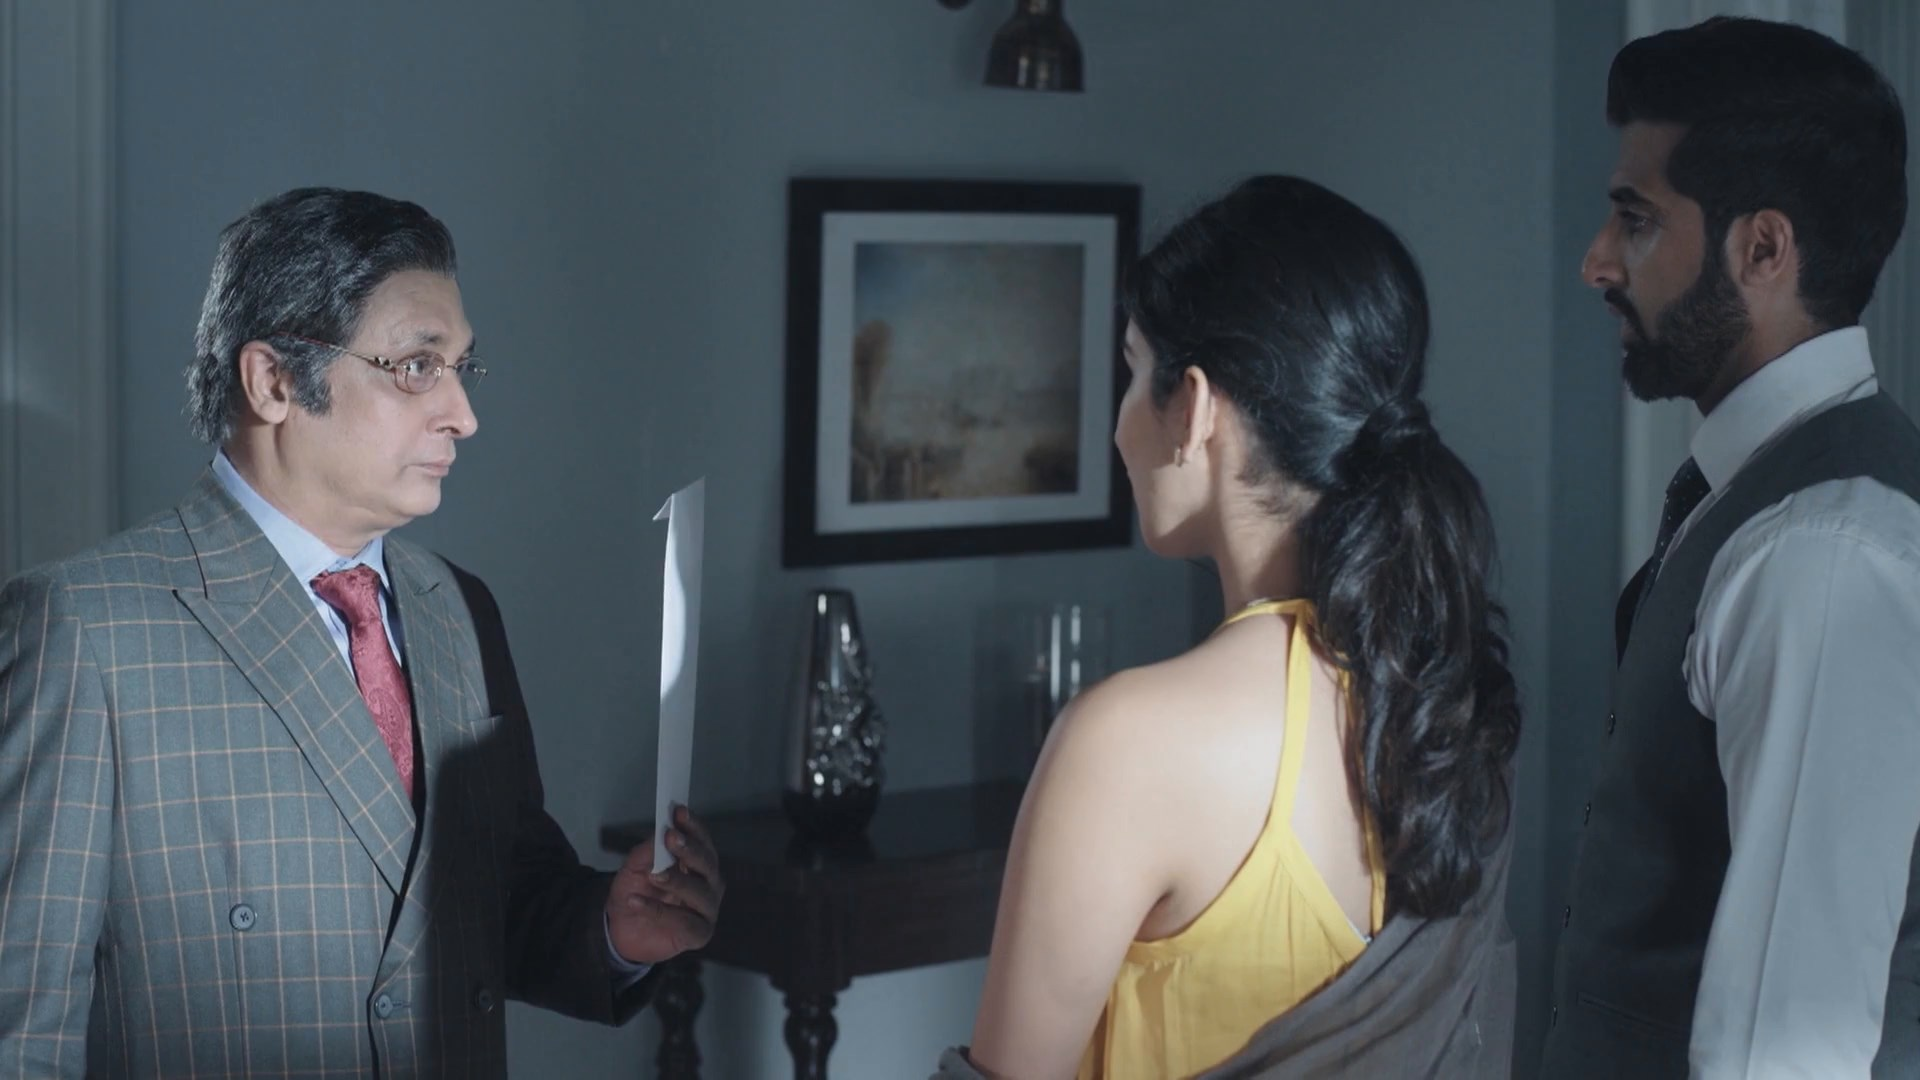 Illegal327babb - Illegal 2020 Hindi S01 Voot Select Complete Web Series 480p HDRip 900MB x264 AAC